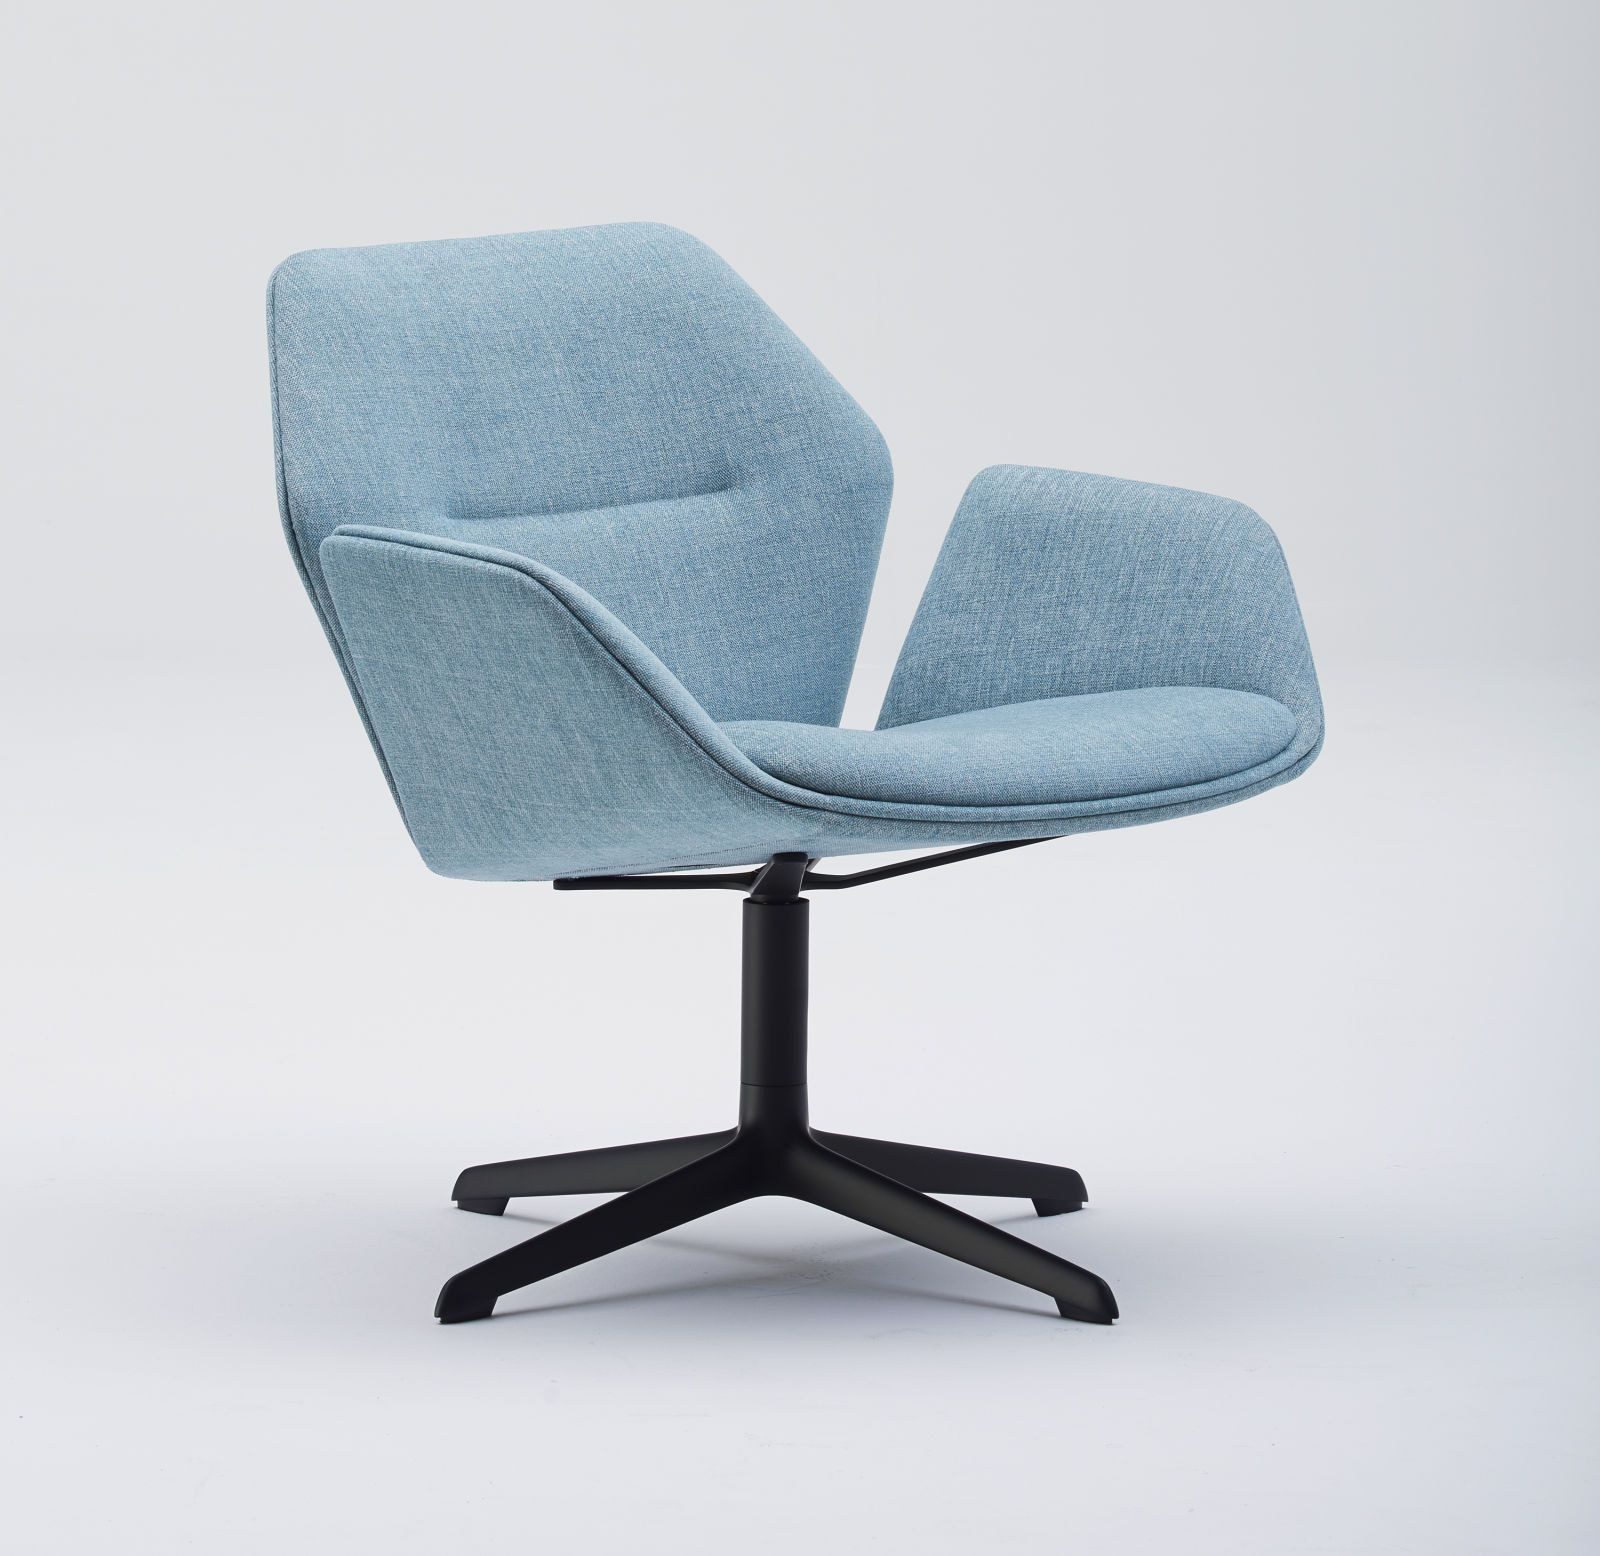 Davis Furniture Library for ginkgo lounge low back